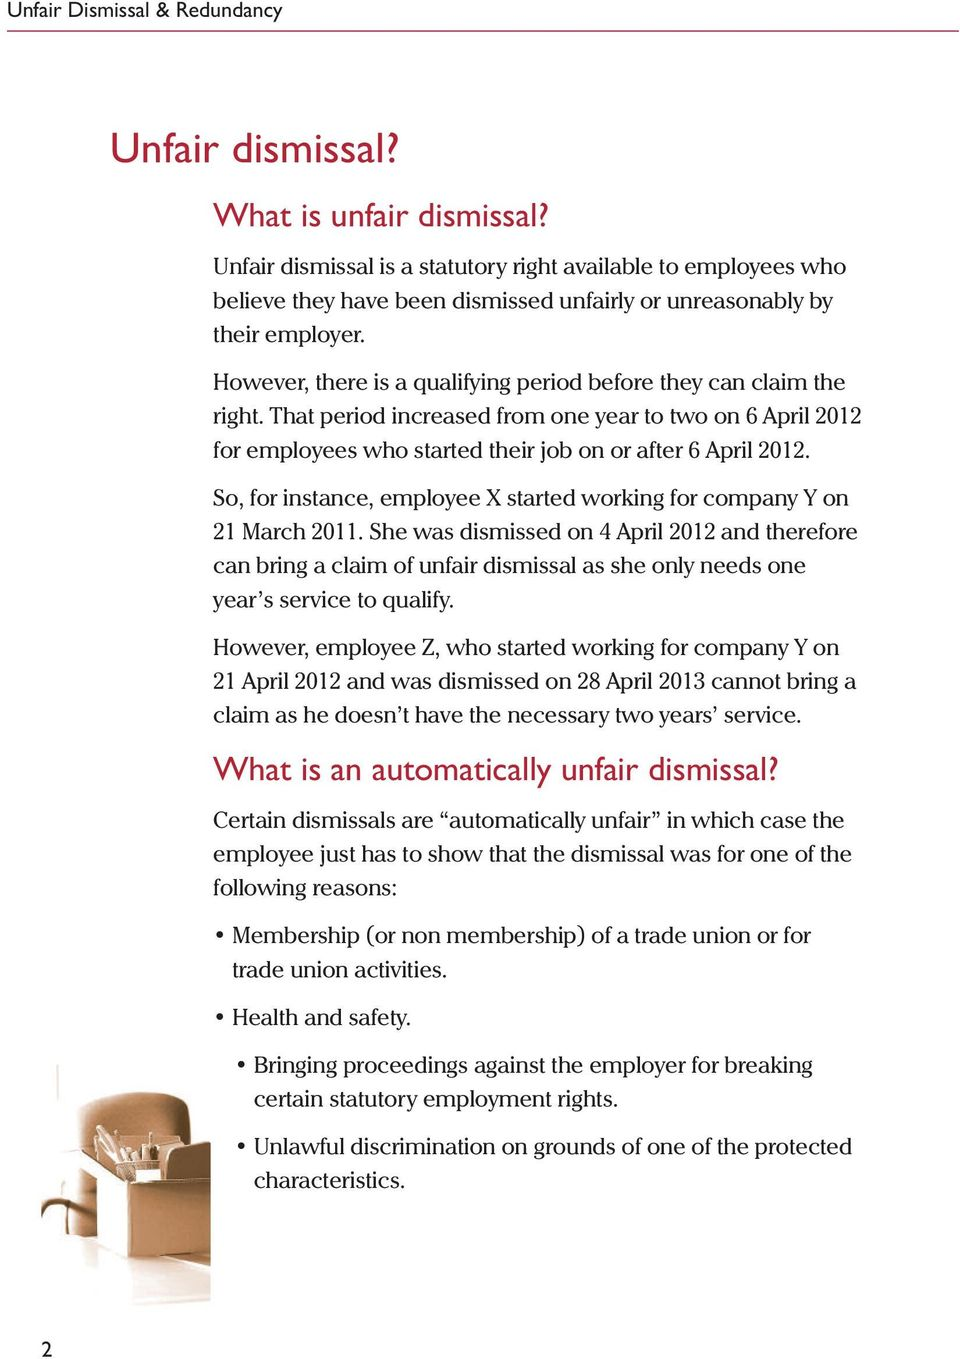 So, for instance, employee X started working for company Y on 21 March 2011.